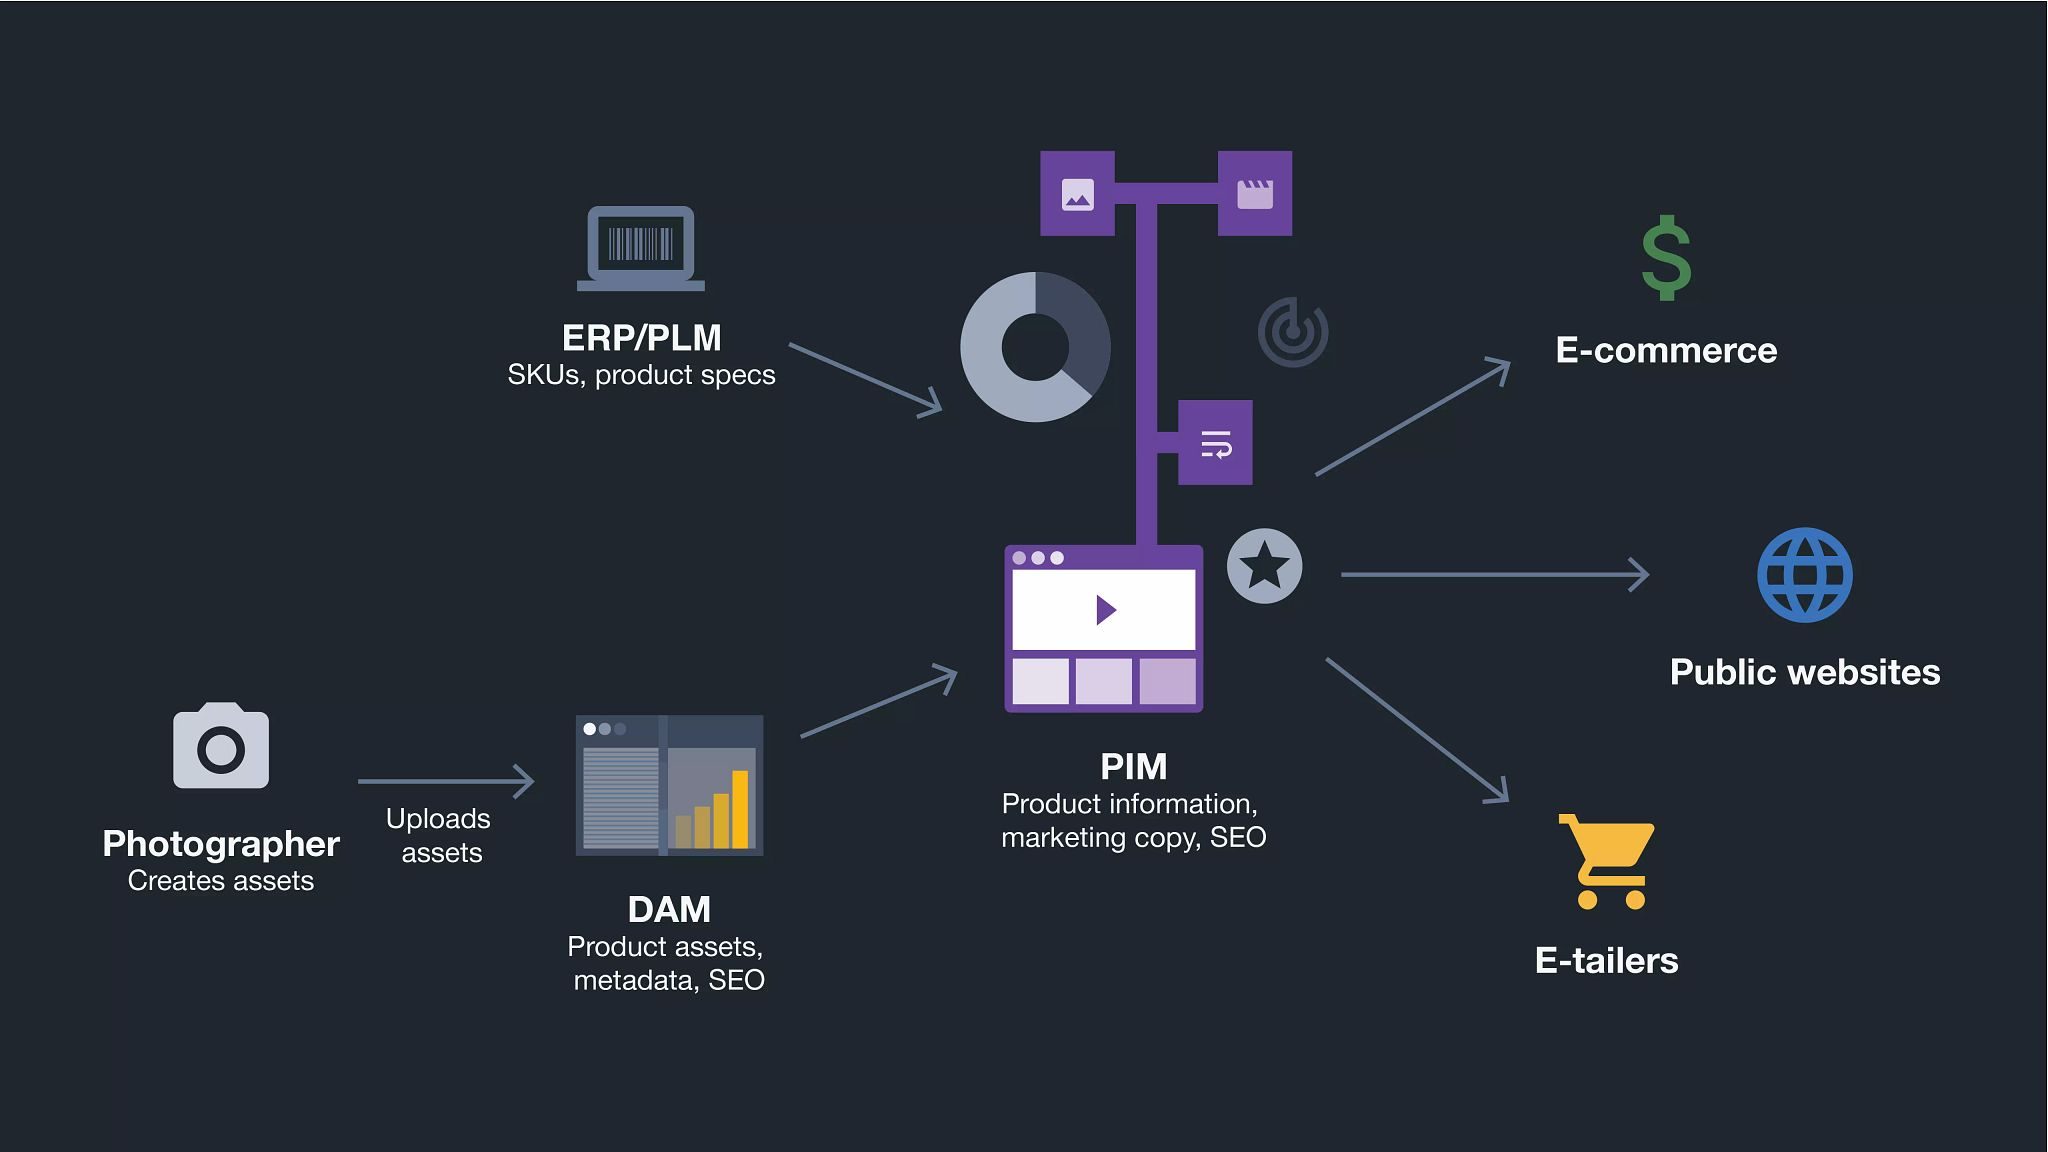 Graphic depicting how photographers upload assets into a DAM system which then feeds into a PIM system, along with SKUs and product specs that come from an ERP or PLM. Then the PIM system shares information to support e-commerce, public websites, and e-tailers.